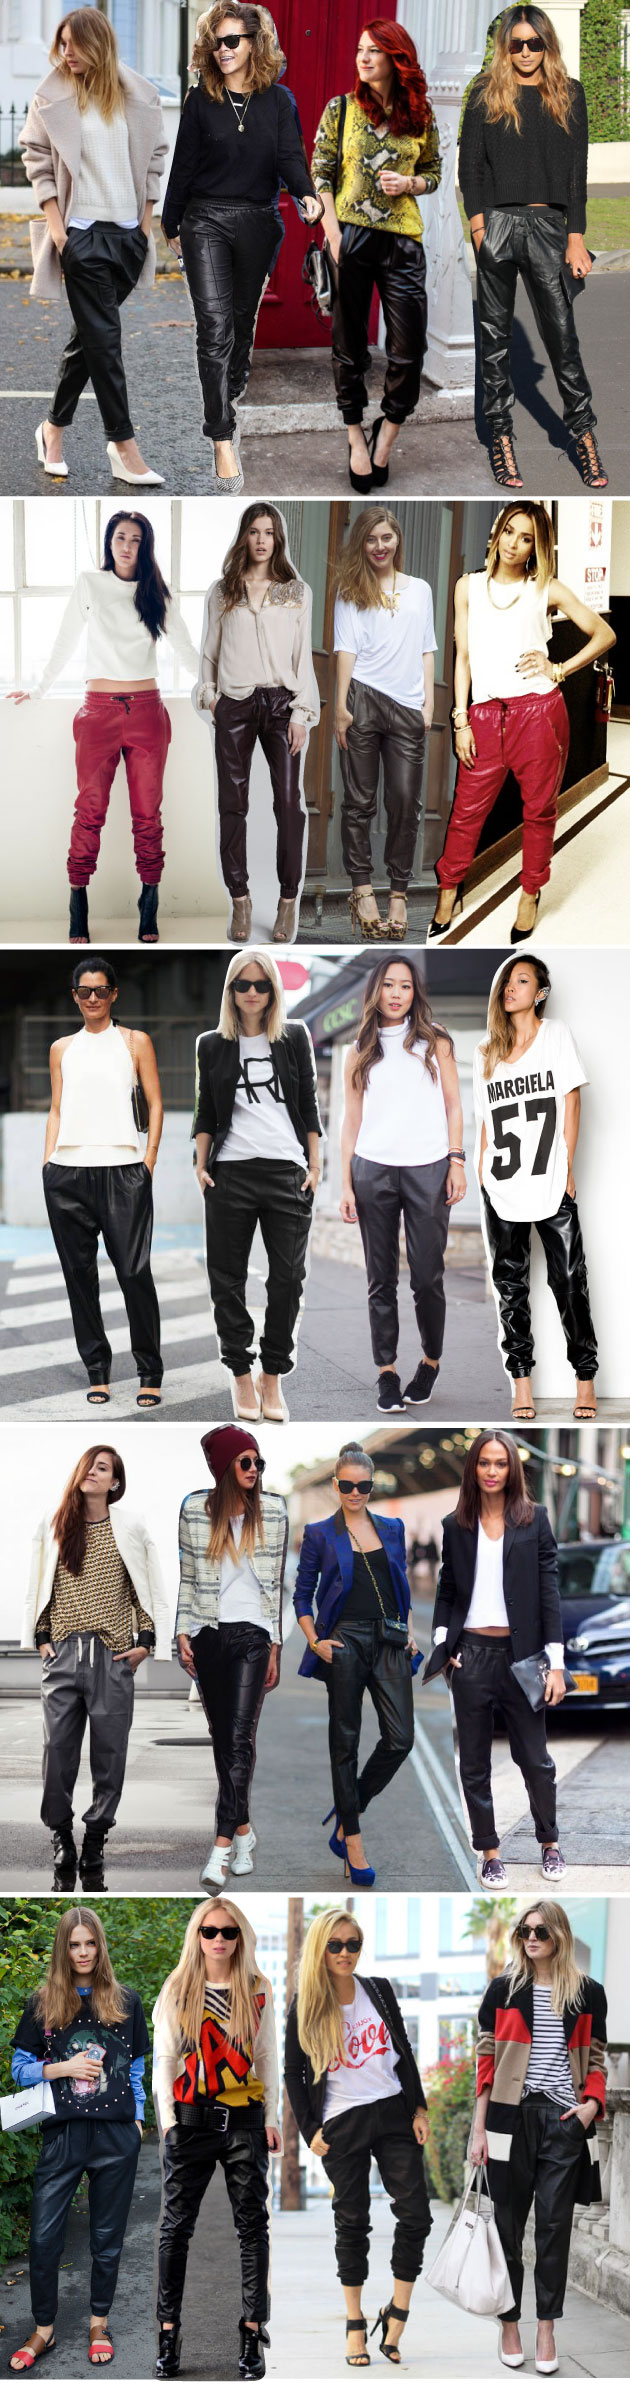 tendencia-calca-moletom-de-couro-leather-sweatpants-trend-onde-comprar-looks